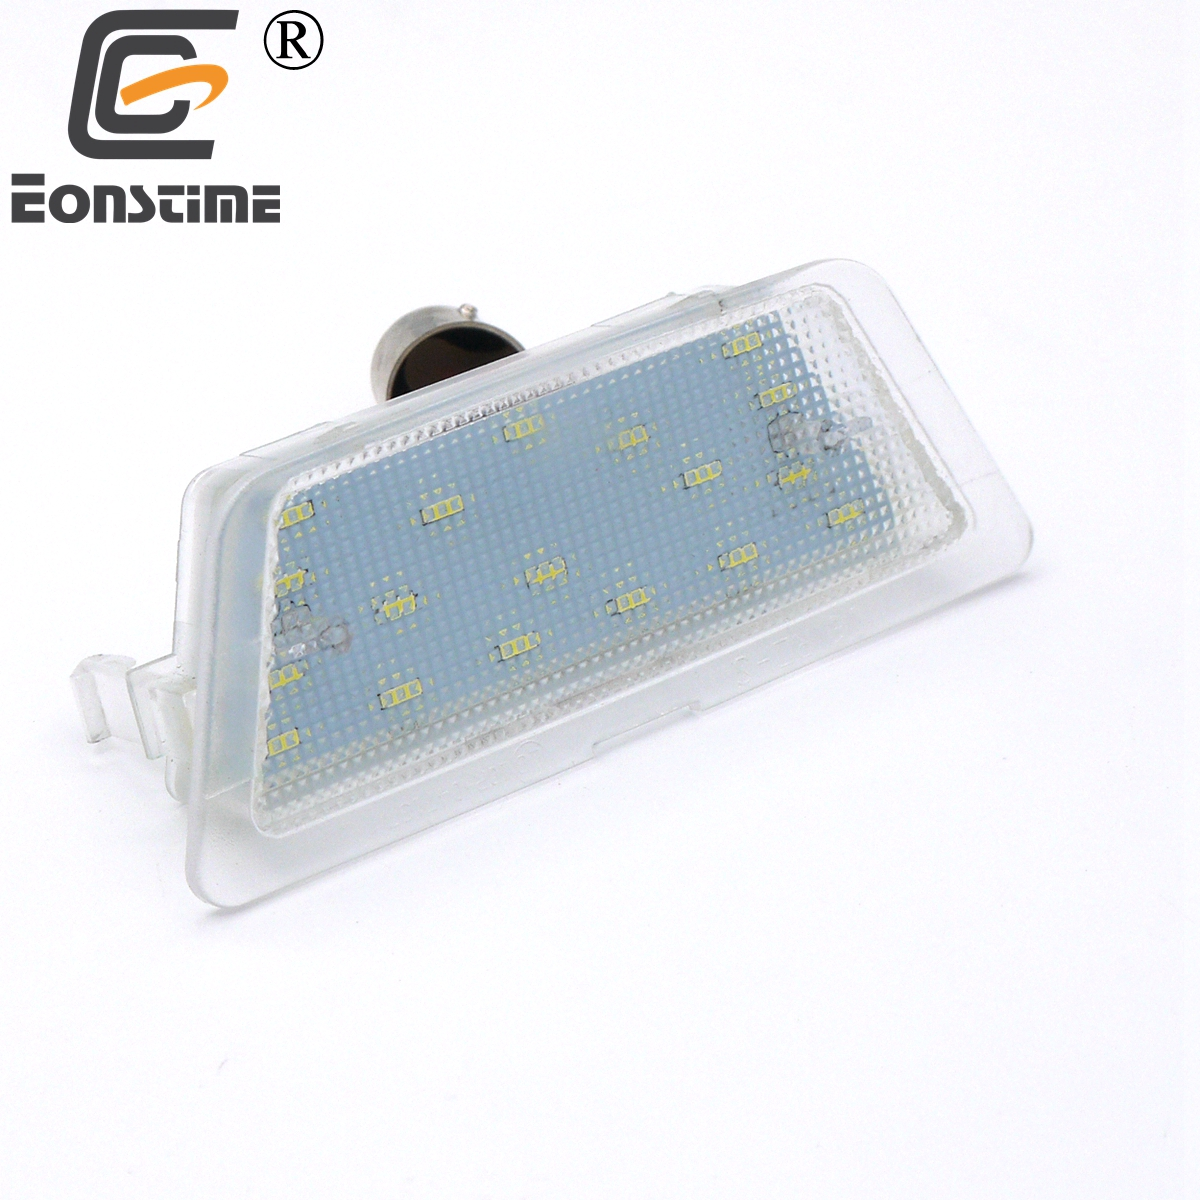 Eonstime 1pcs 12V Car Free Error 18LED License Plate Light For For Opel Astra G 1998-2004 Hatch Saloon